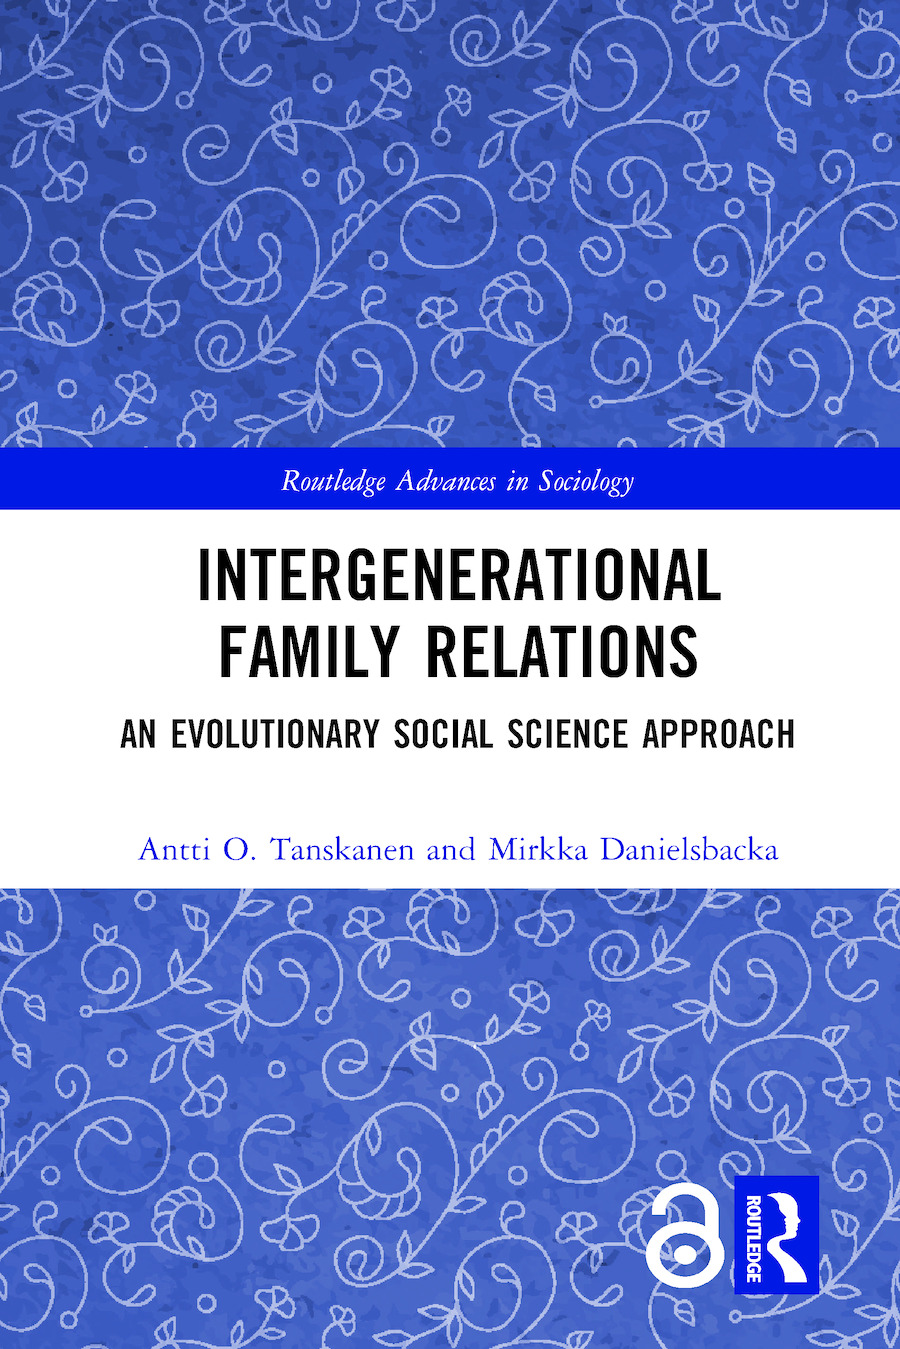 Intergenerational Family Relations: An Evolutionary Social Science Approach book cover